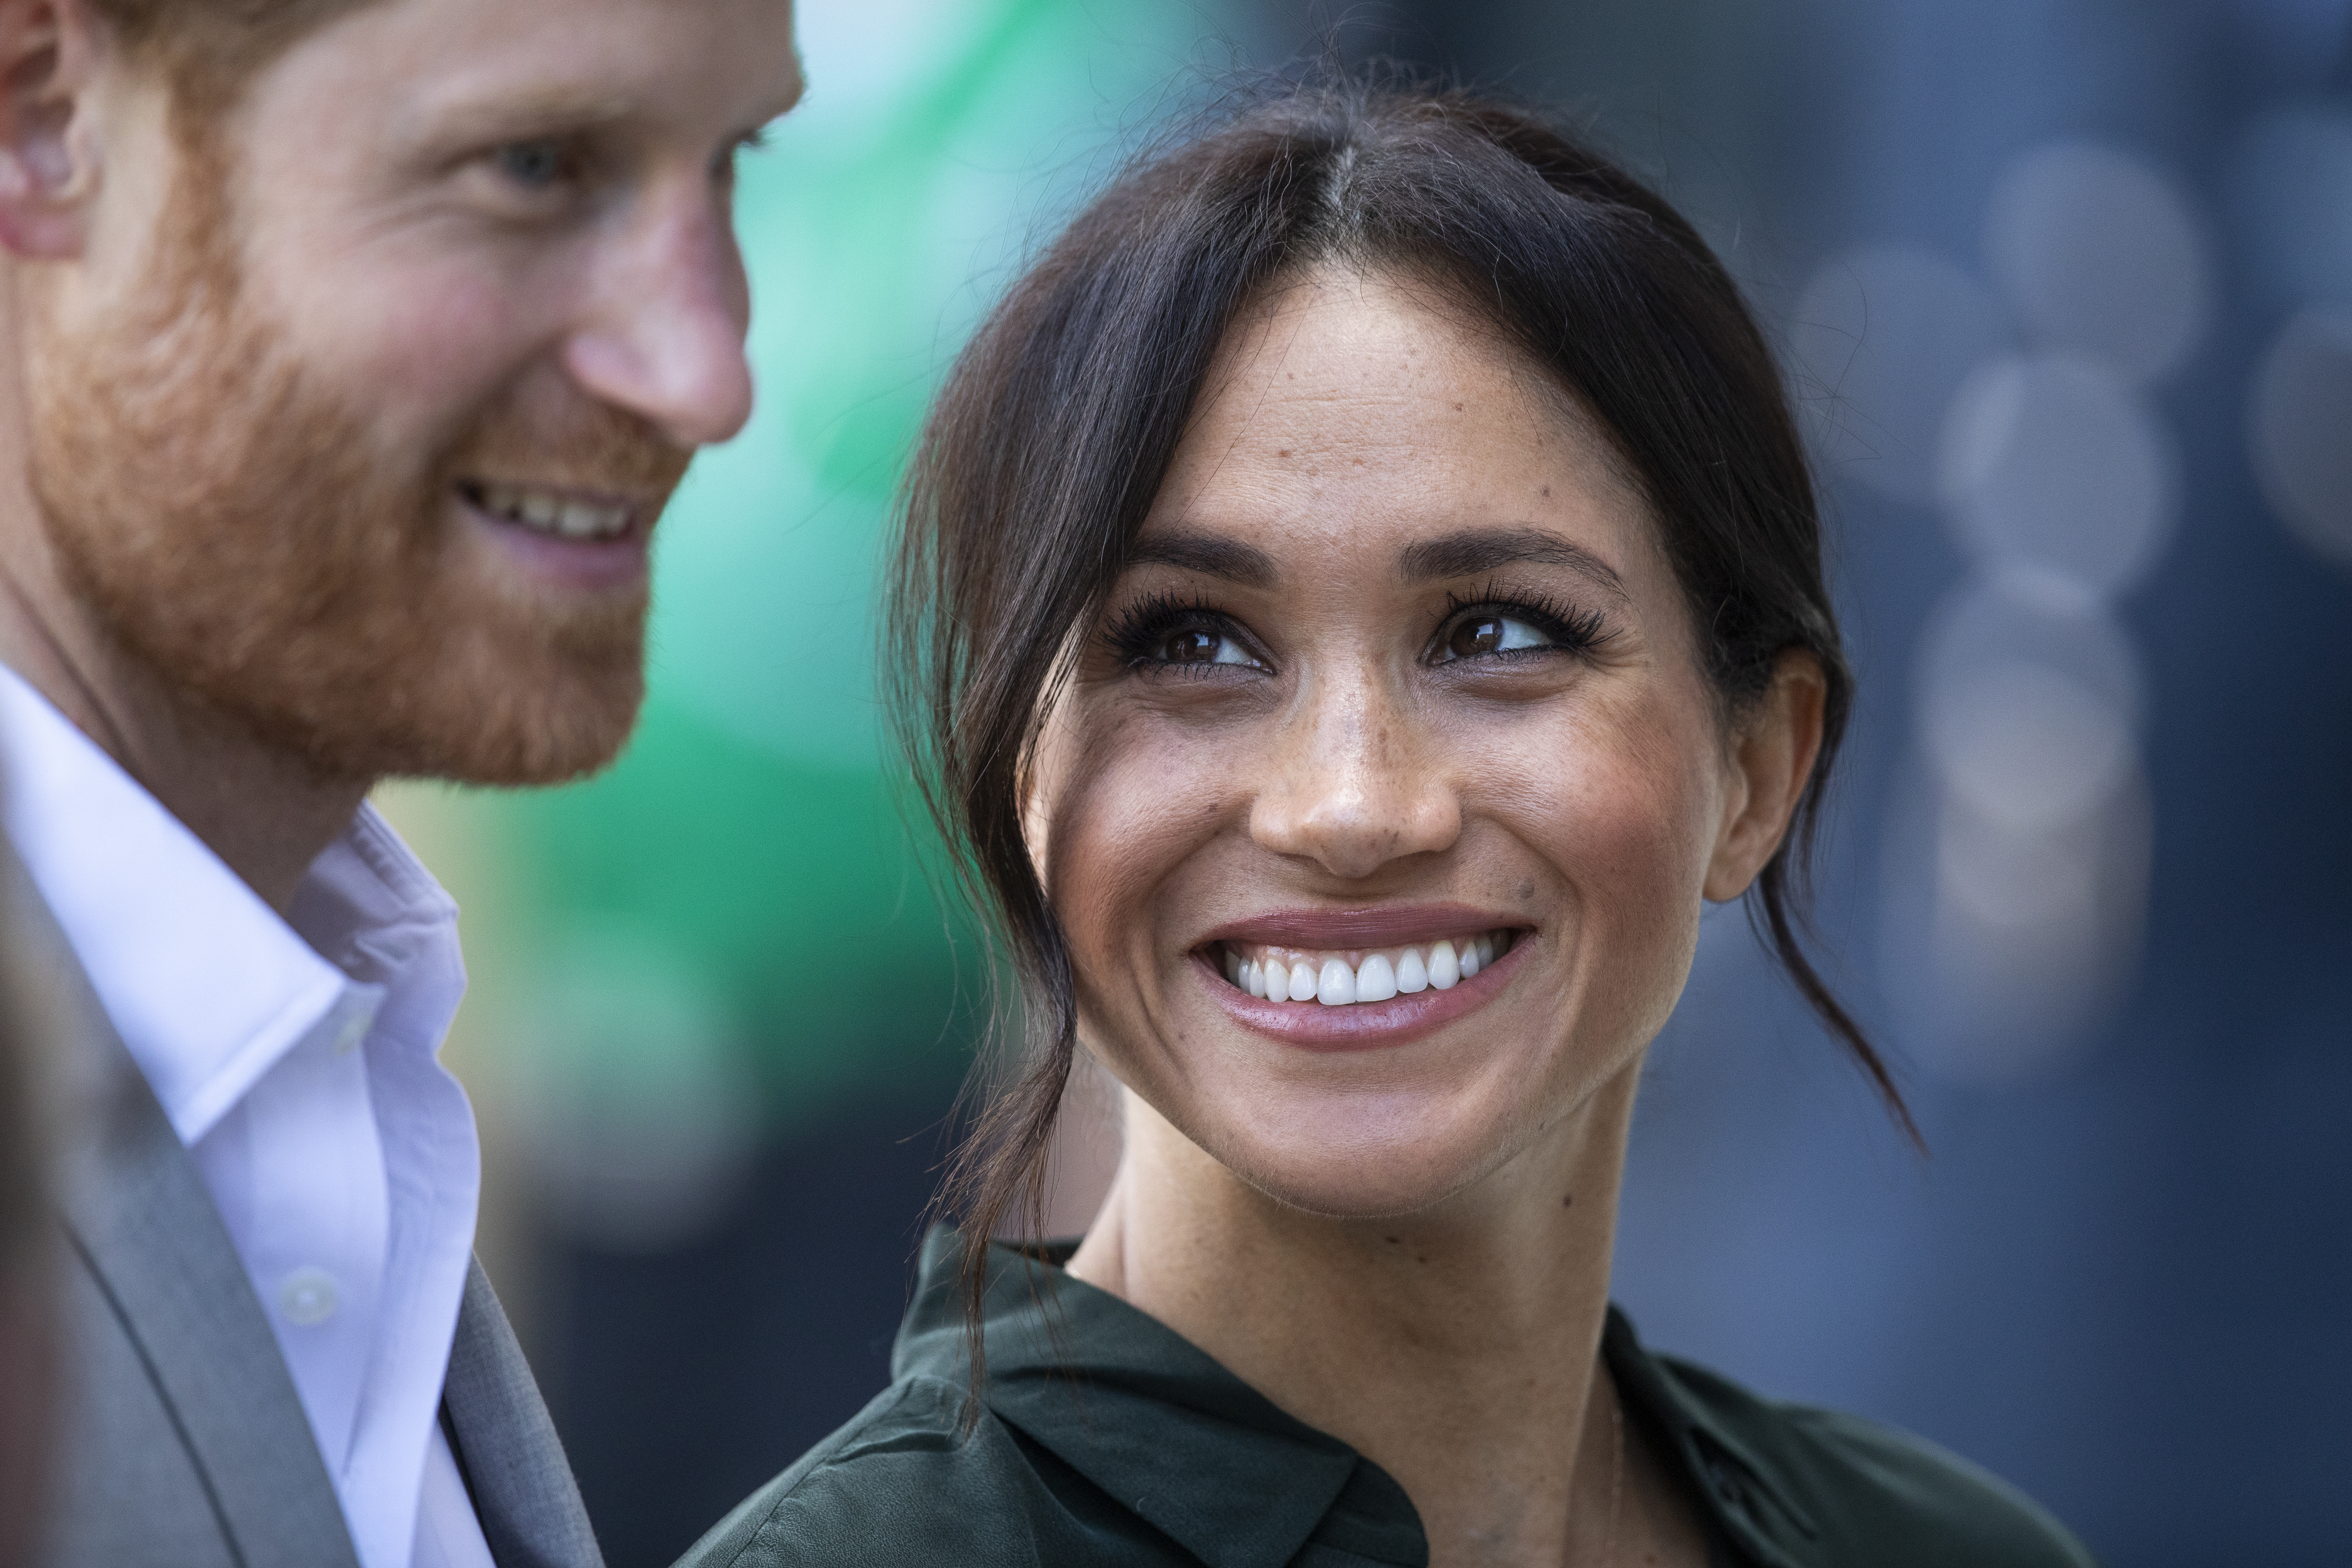 Prince Harry and his wife Meghan Markle (Source: Getty Images)